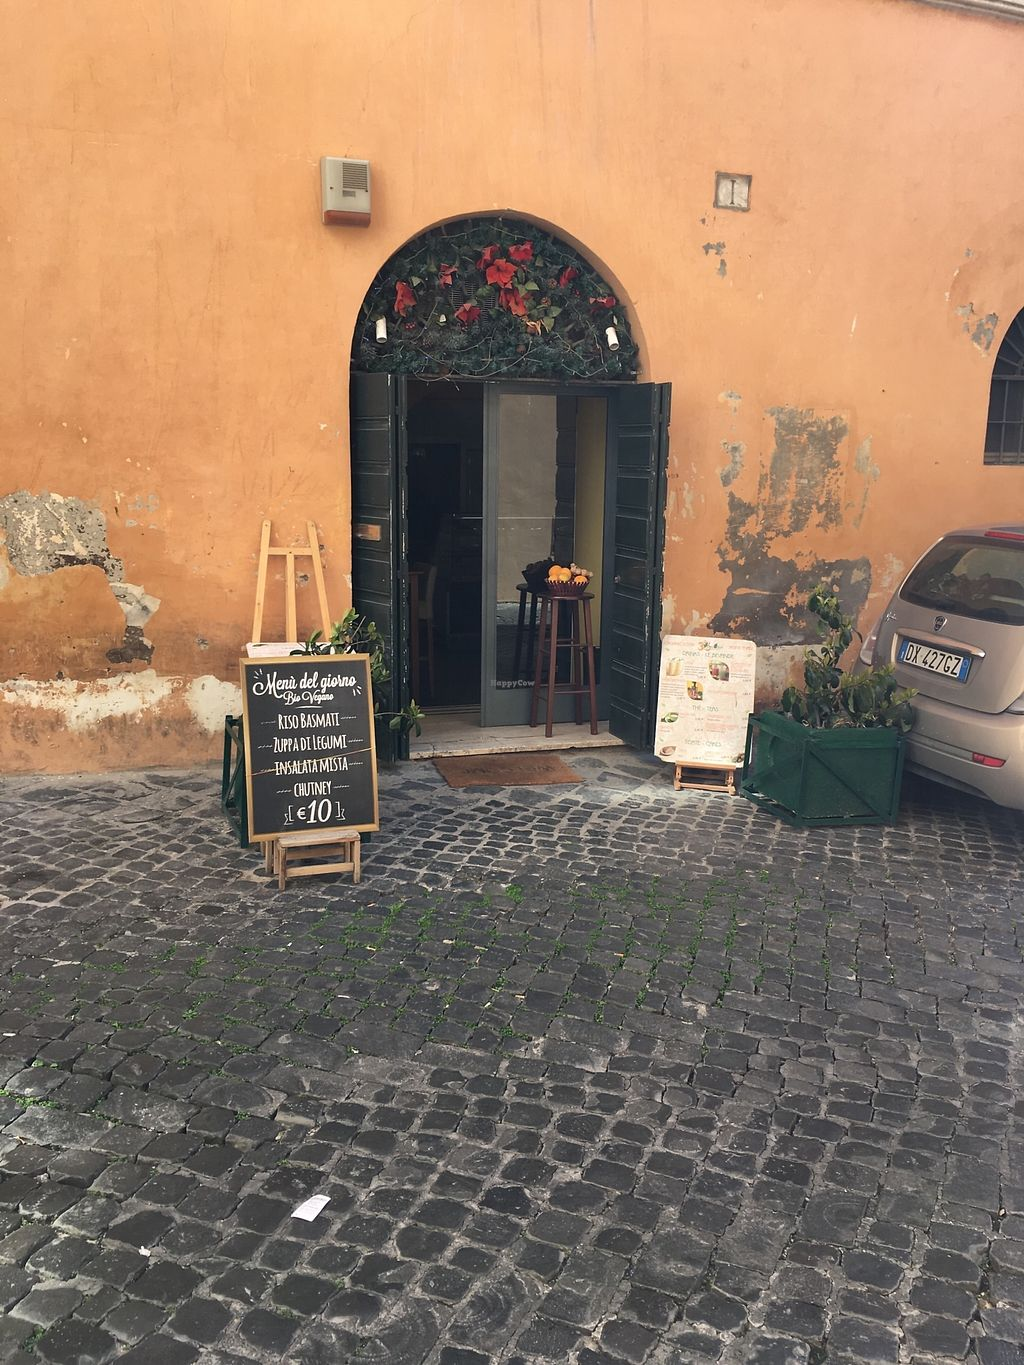 """Photo of Vega Food  by <a href=""""/members/profile/veggiefile"""">veggiefile</a> <br/>Front entrance, easy to miss! <br/> March 23, 2018  - <a href='/contact/abuse/image/58628/374793'>Report</a>"""